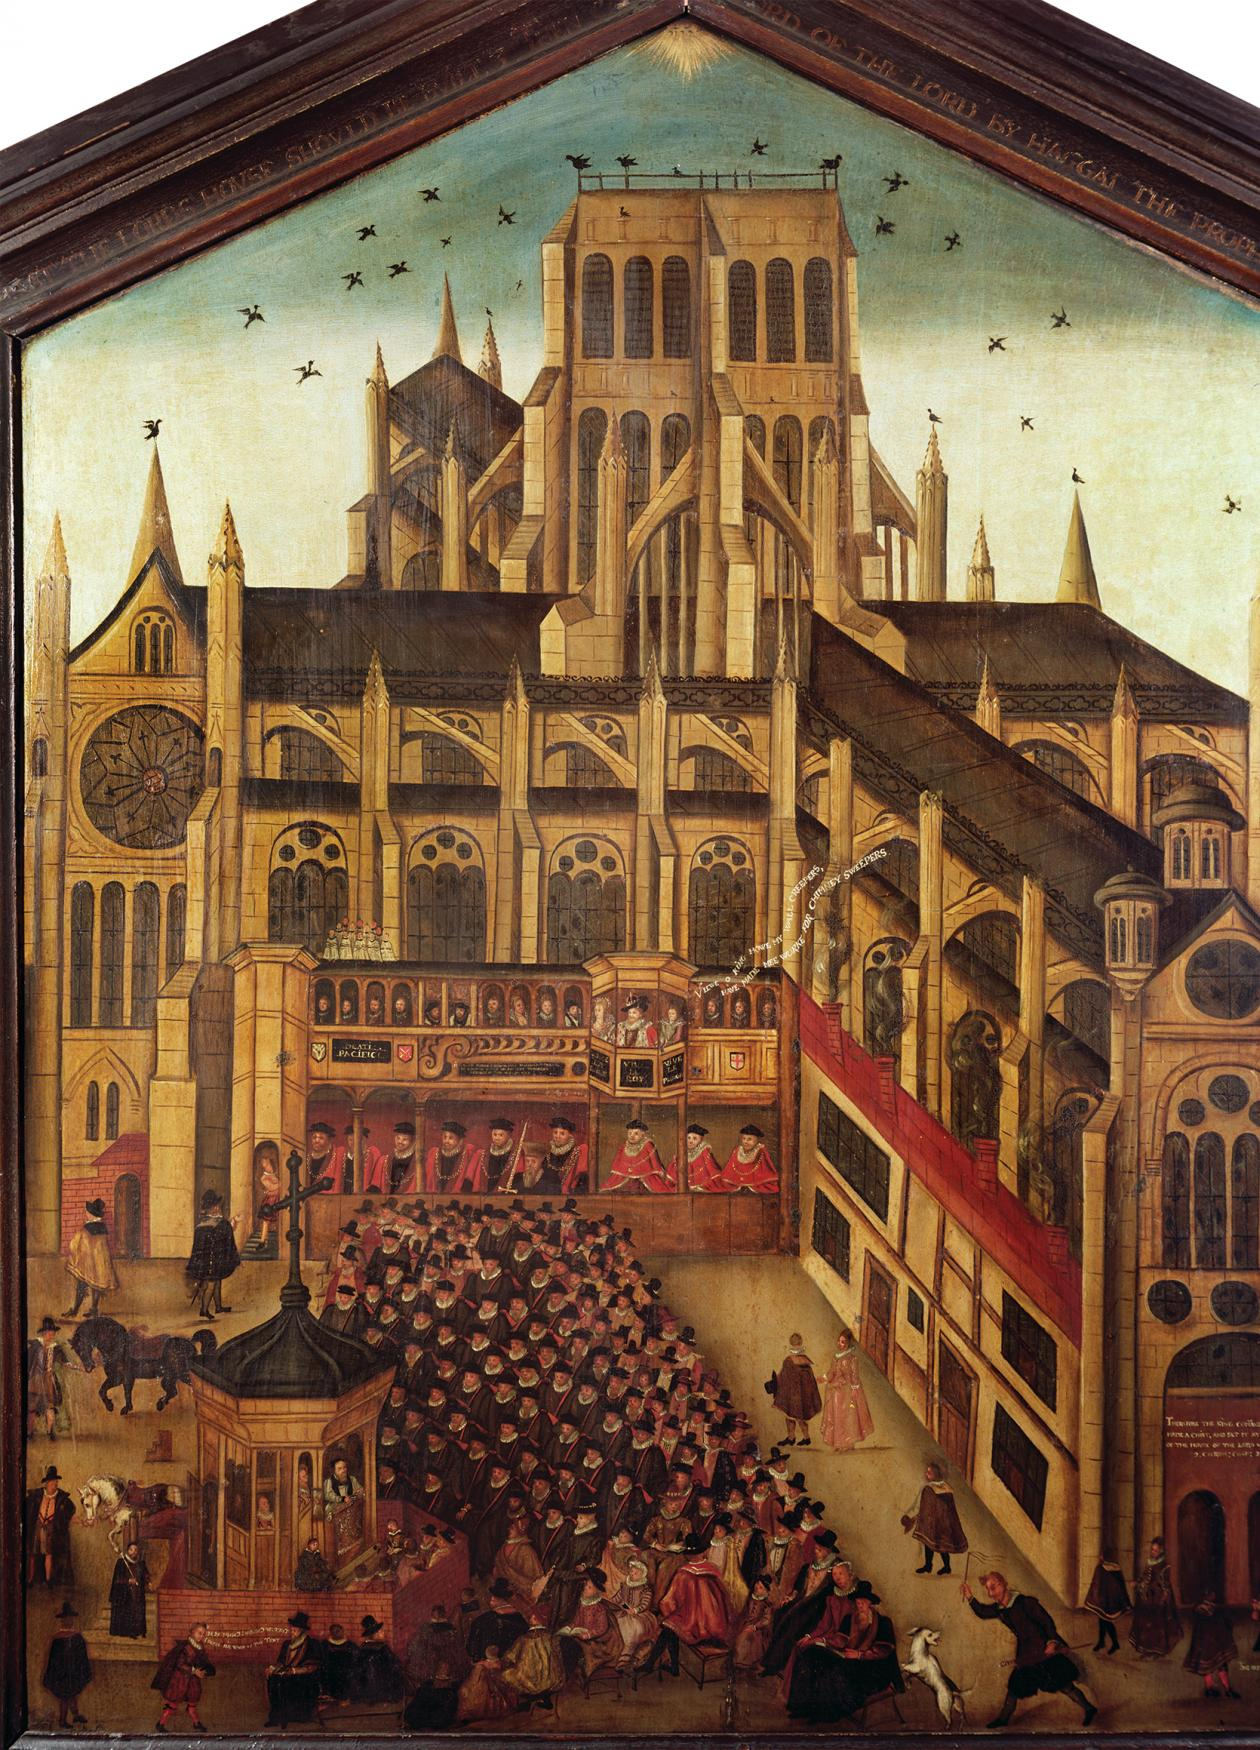 1616 drawing of Saint Paul's Cathedral, filled with church goers